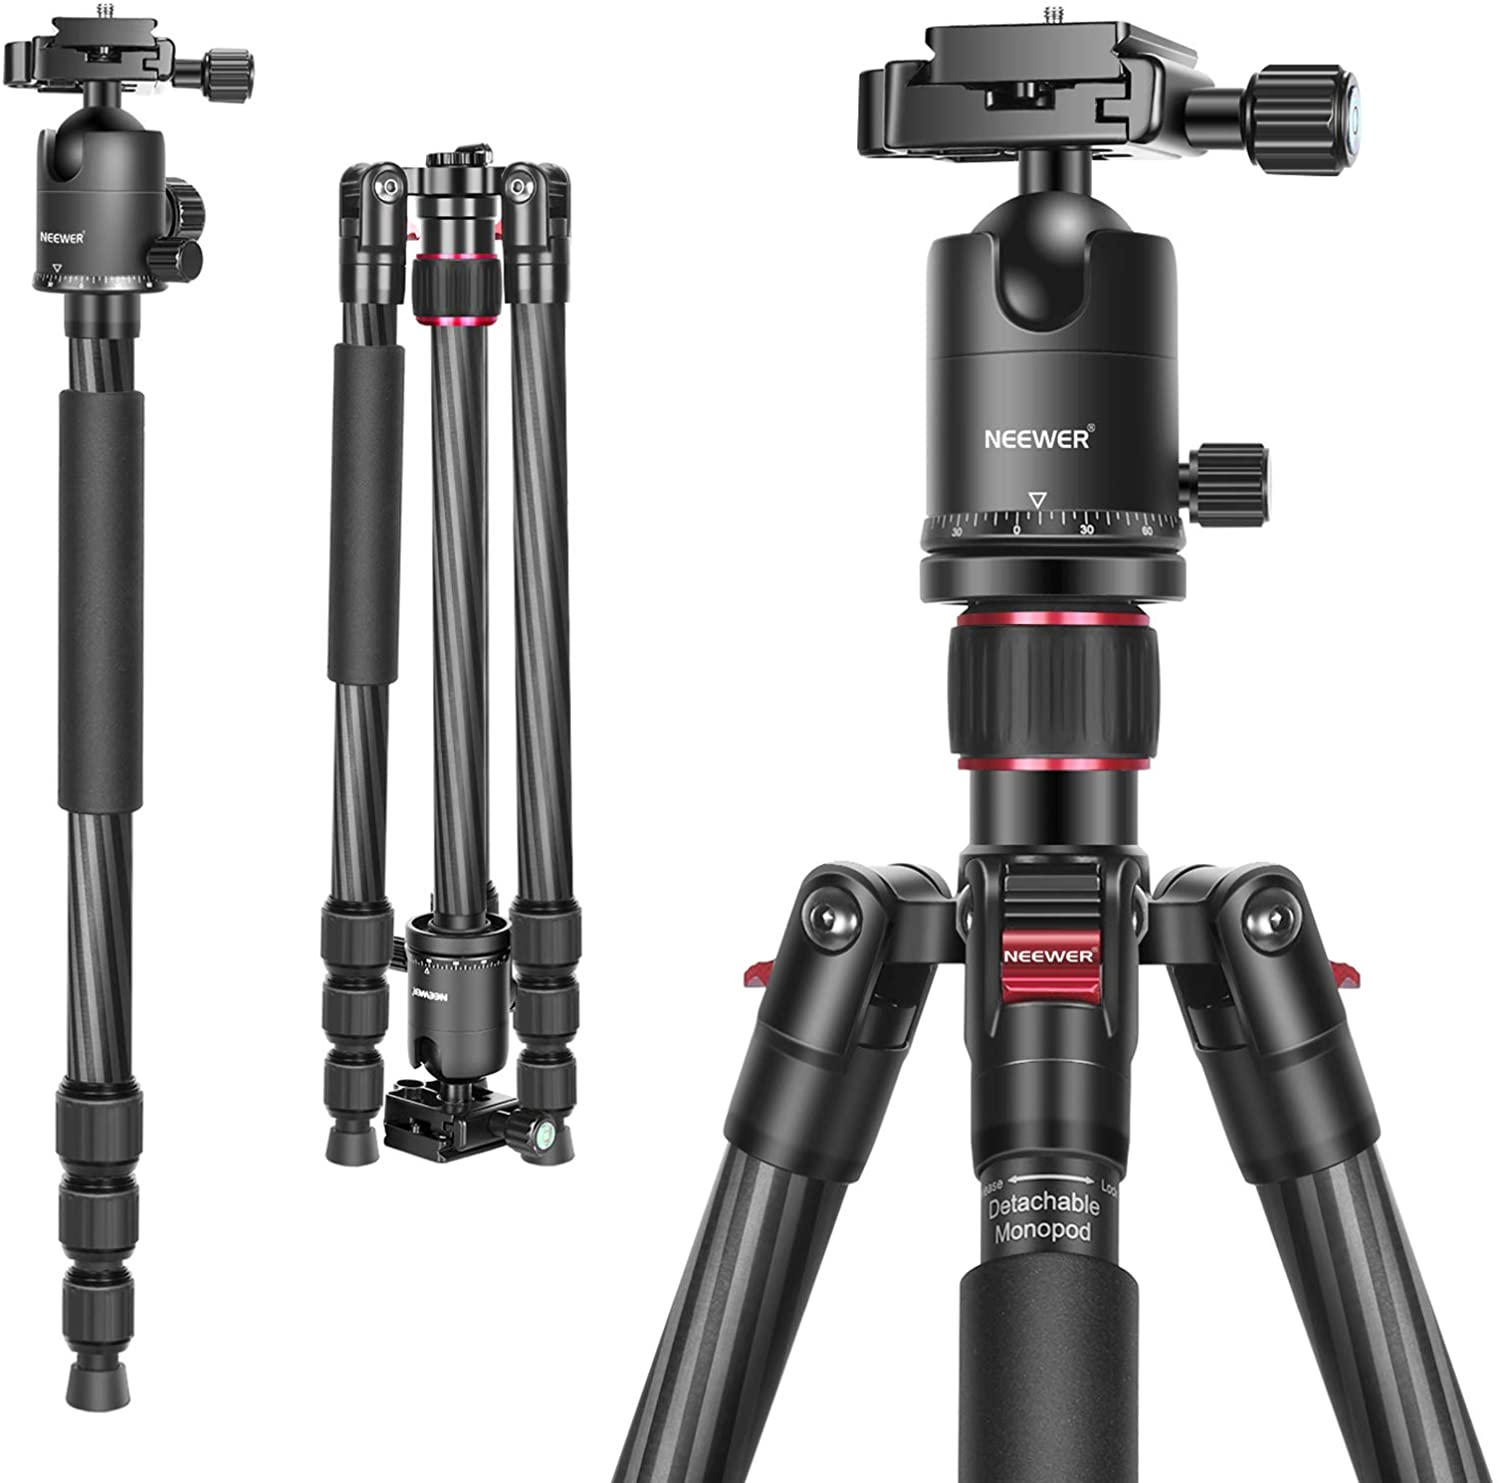 Neewer Carbon Fiber Camera Tripod